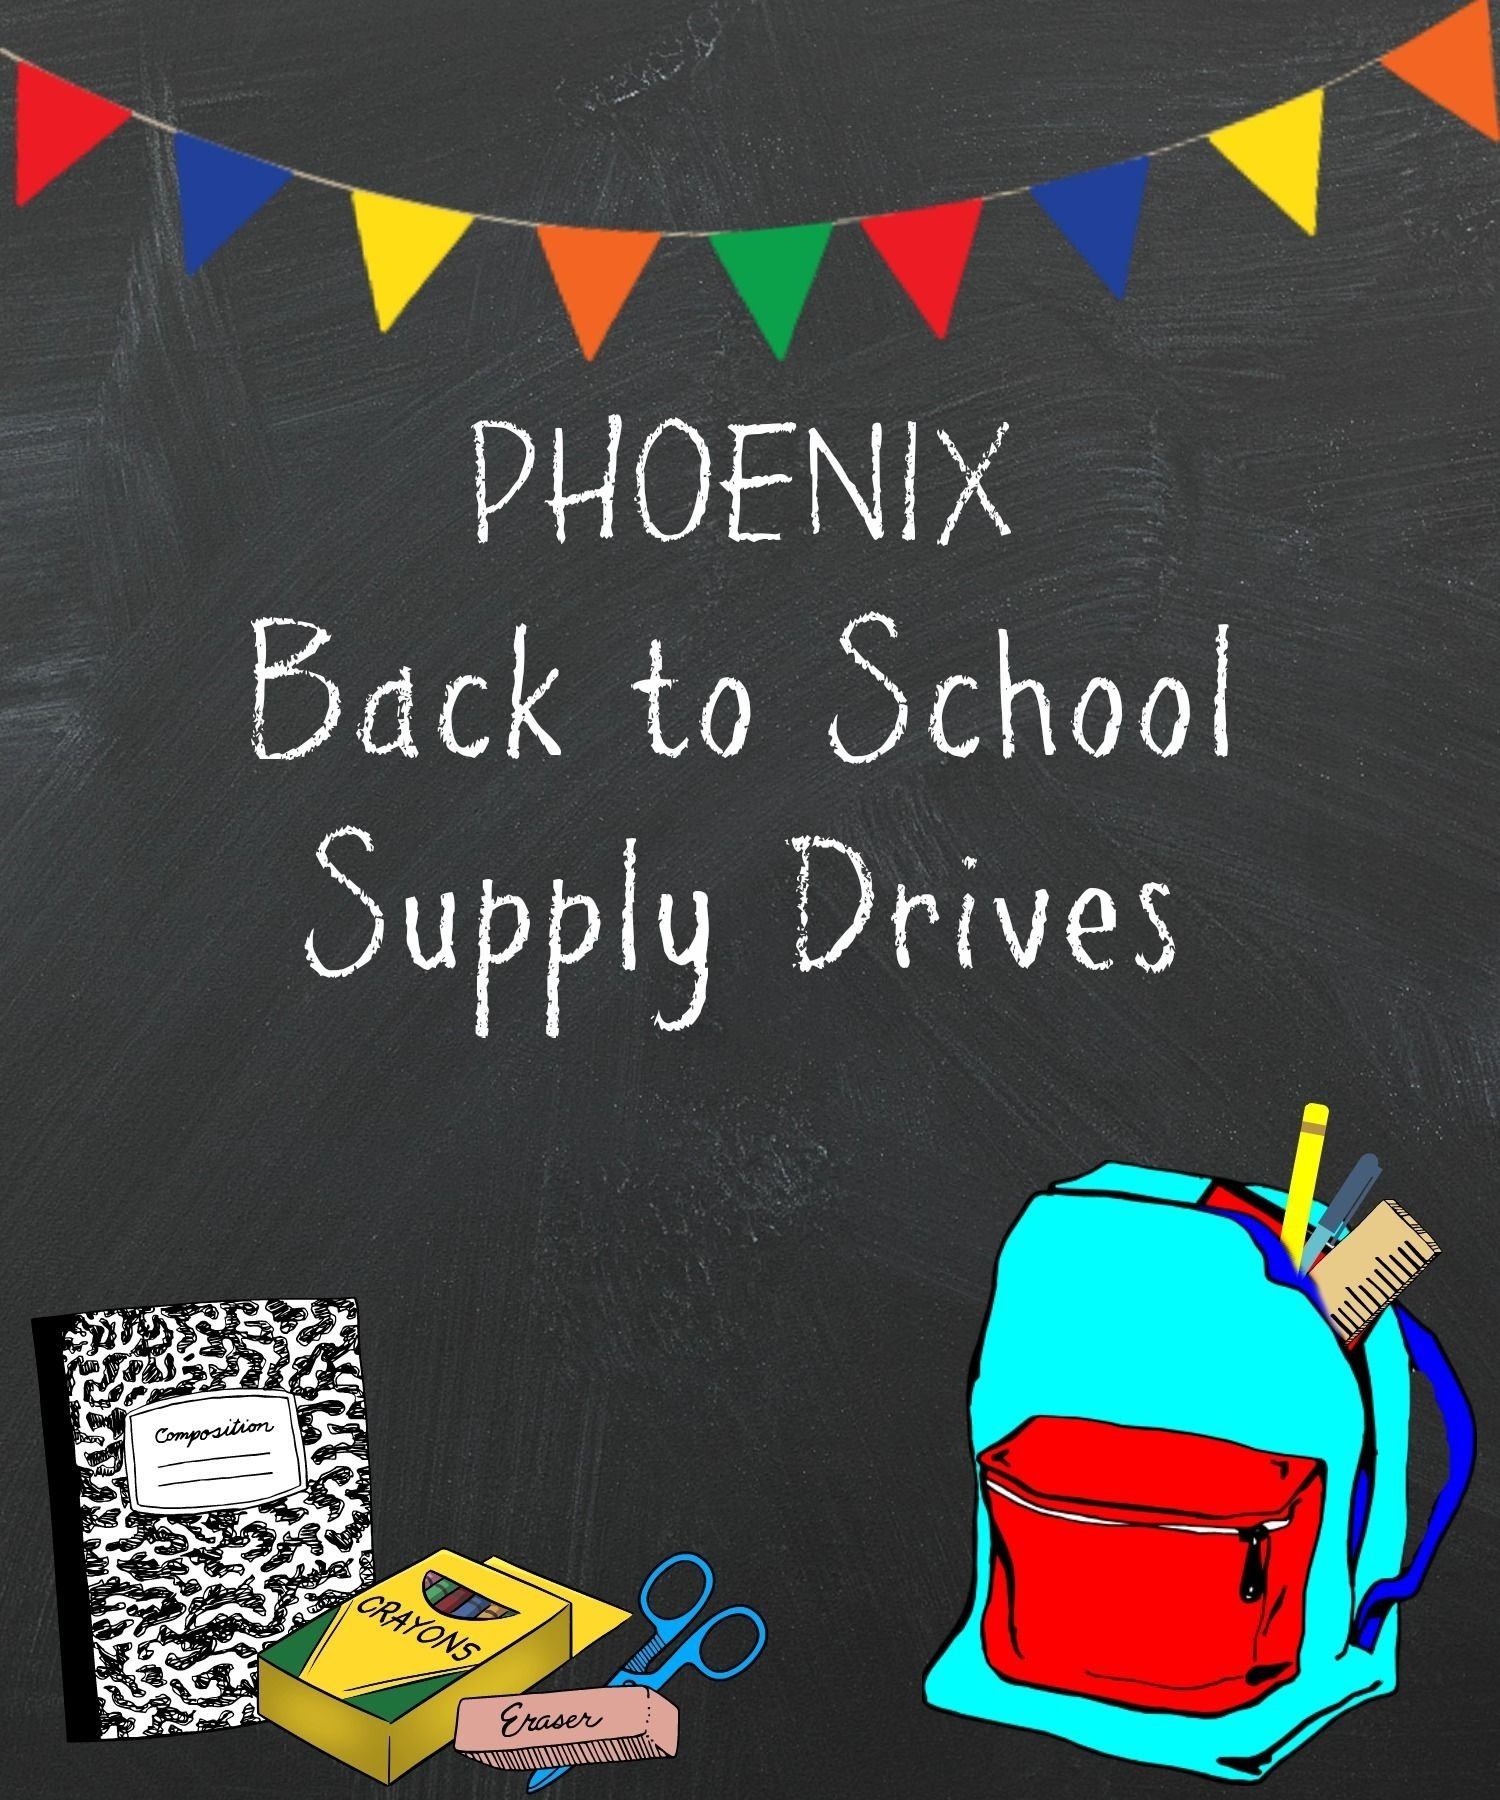 10 Unique High School Service Project Ideas extensive list of phoenix area back to school supply drives